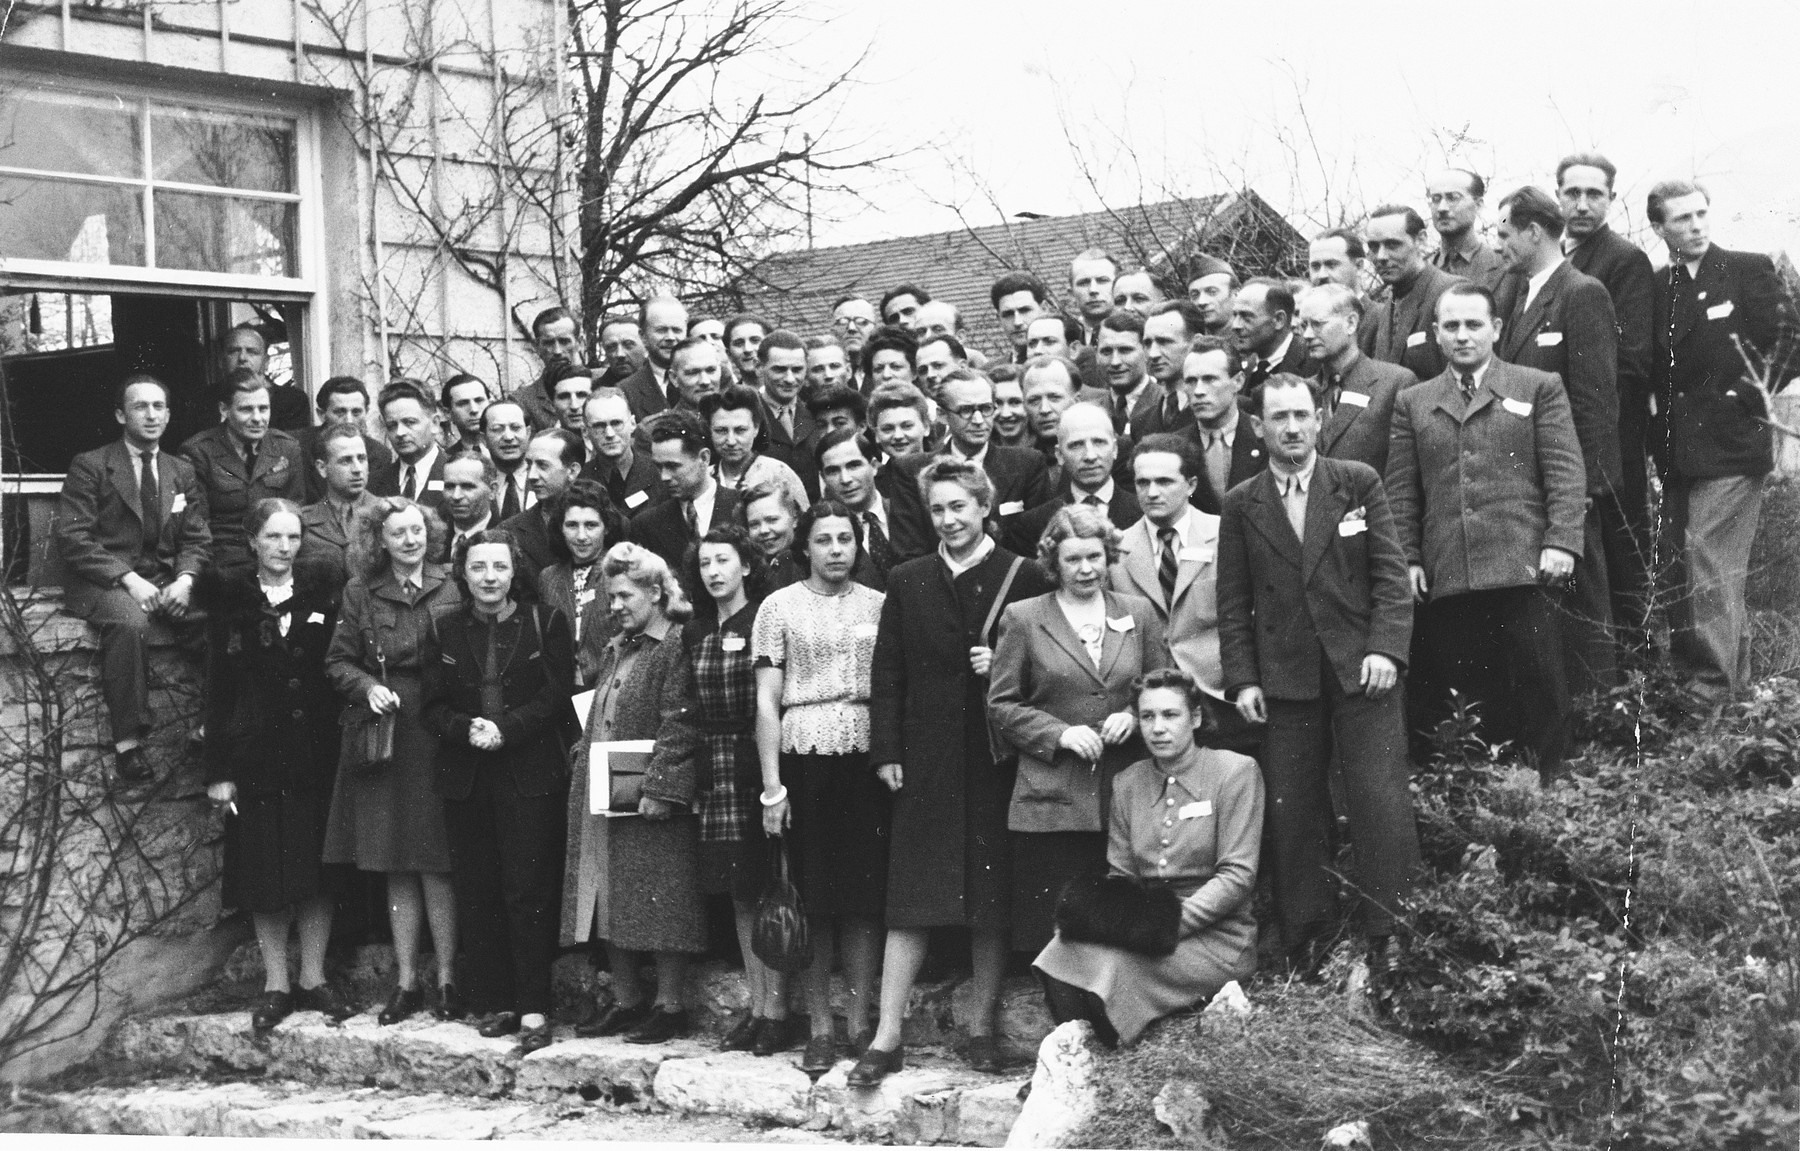 Group portrait of DPs selected to attend a class on American administration in preparation for assuming leadership positions in their camps.  Among those pictured is Natan Slepian (top row).